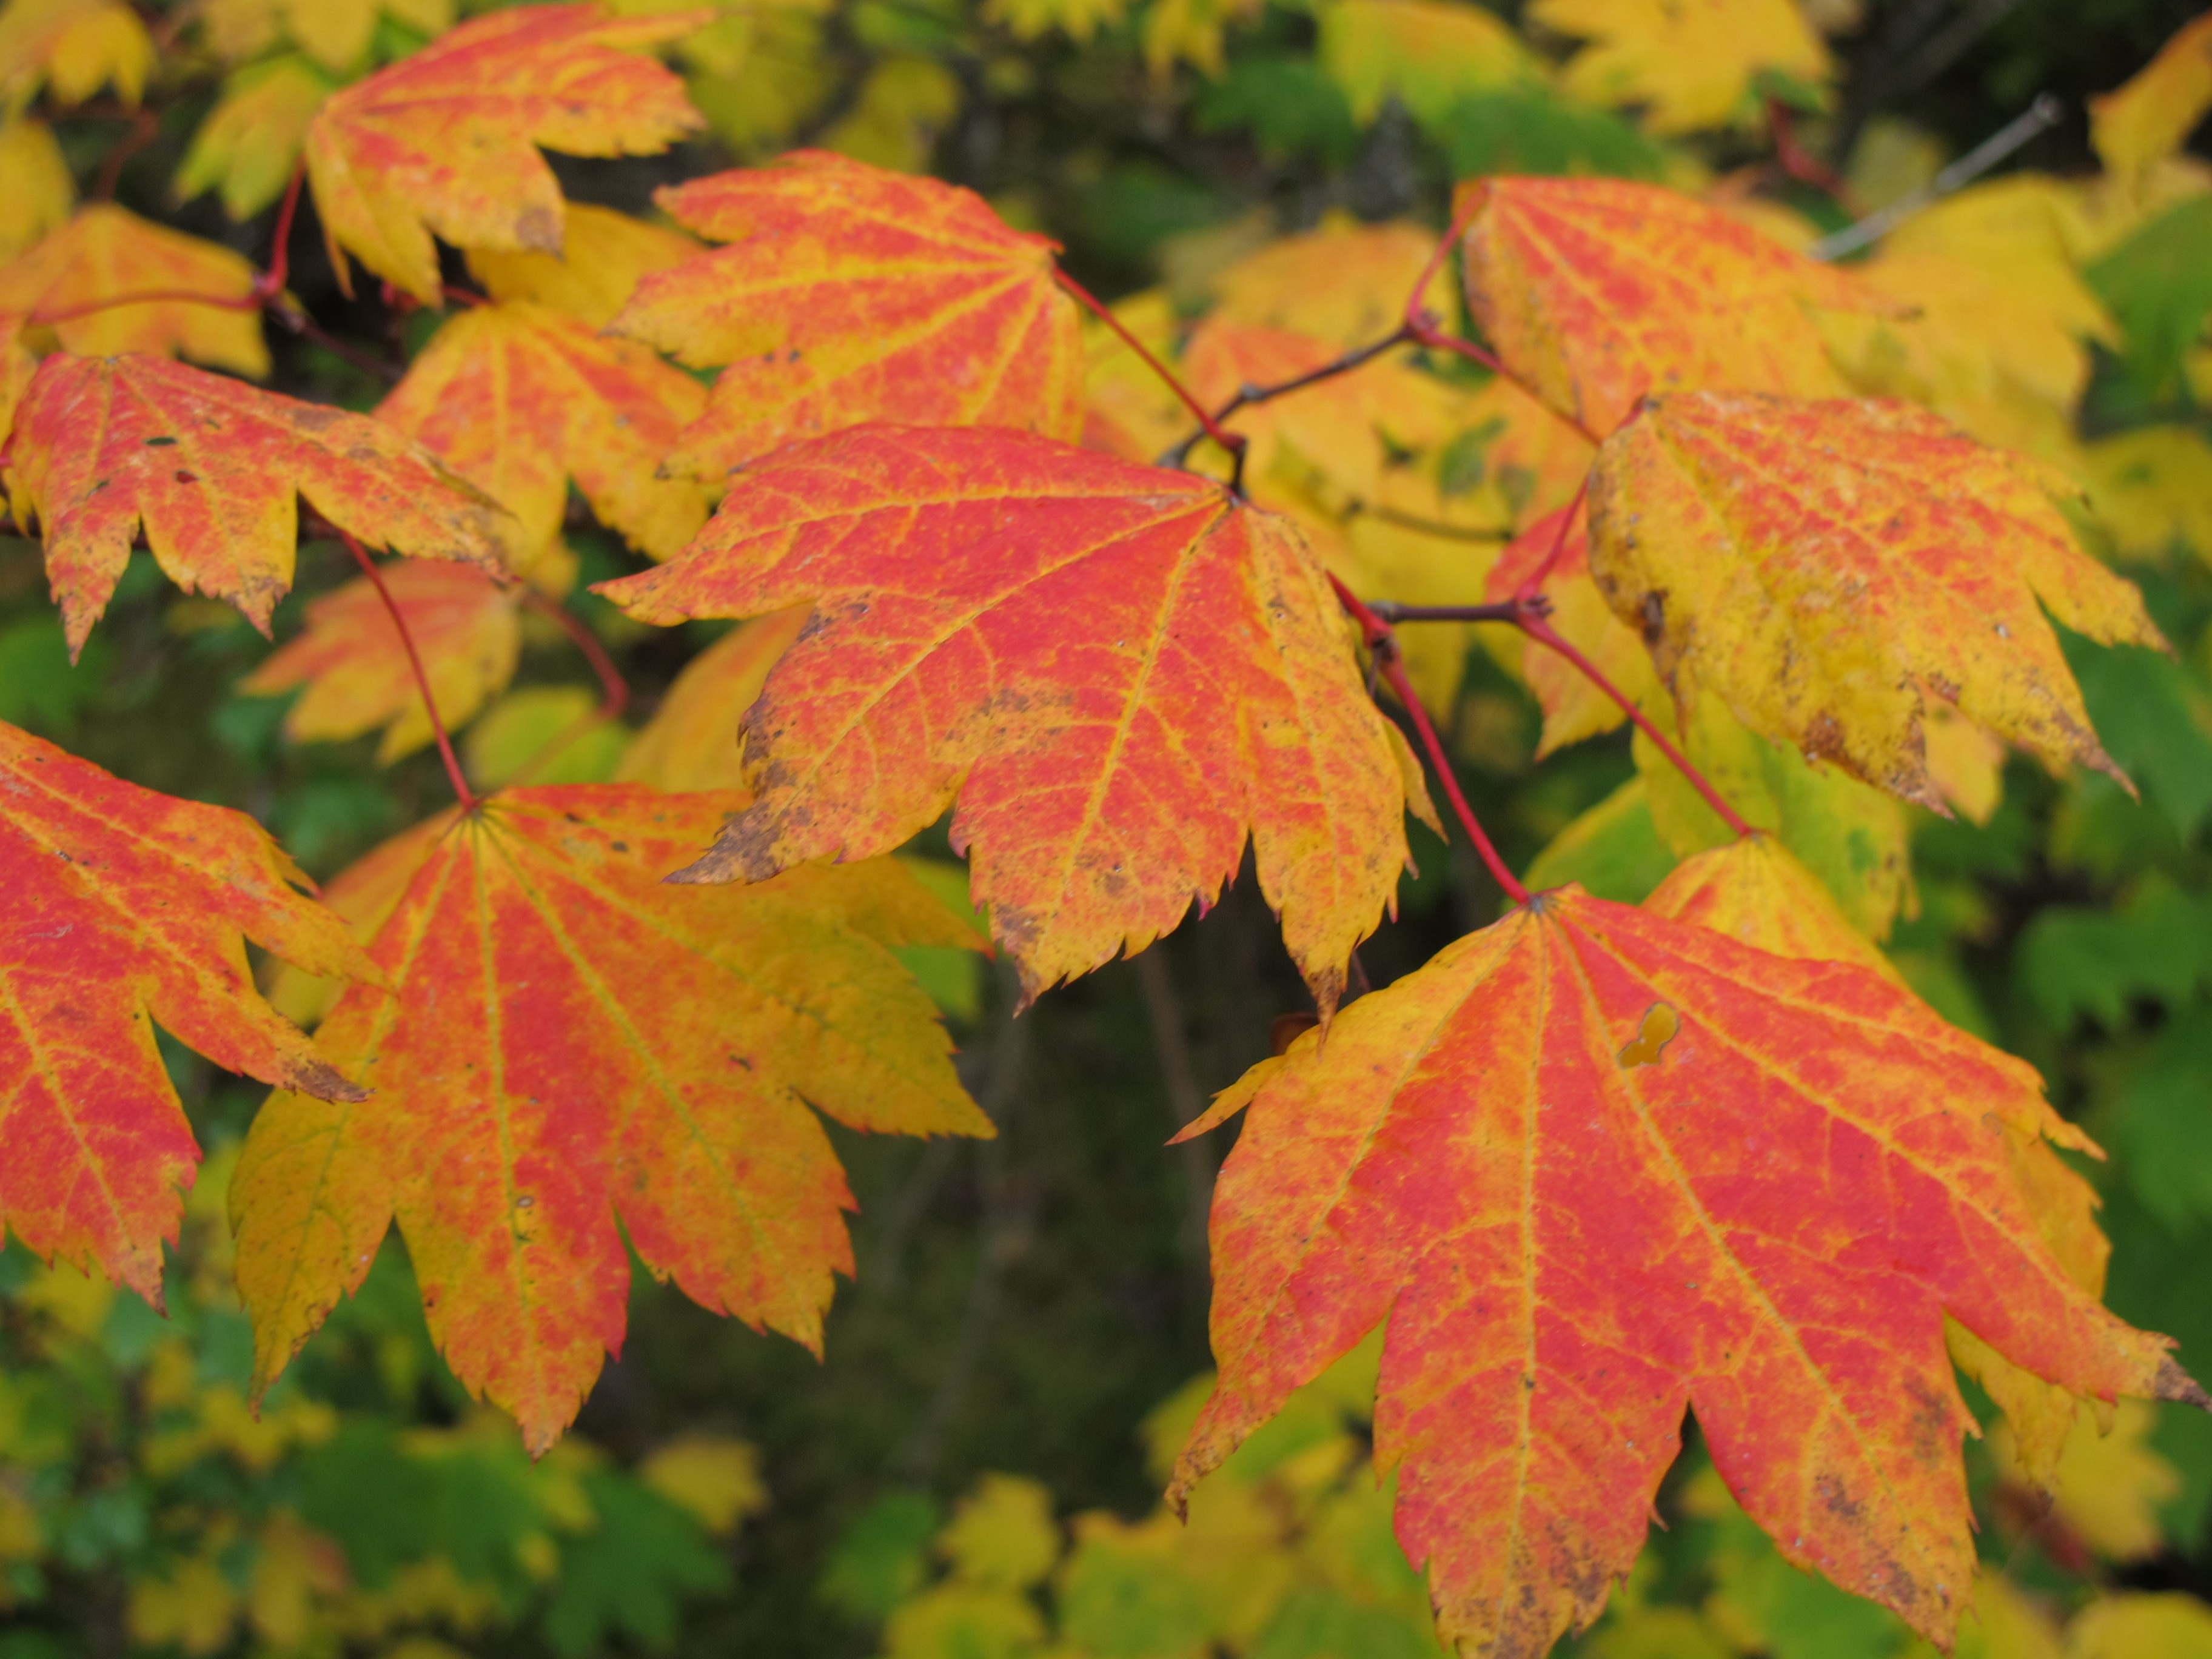 Orange, yellow, and red vine maple leaves